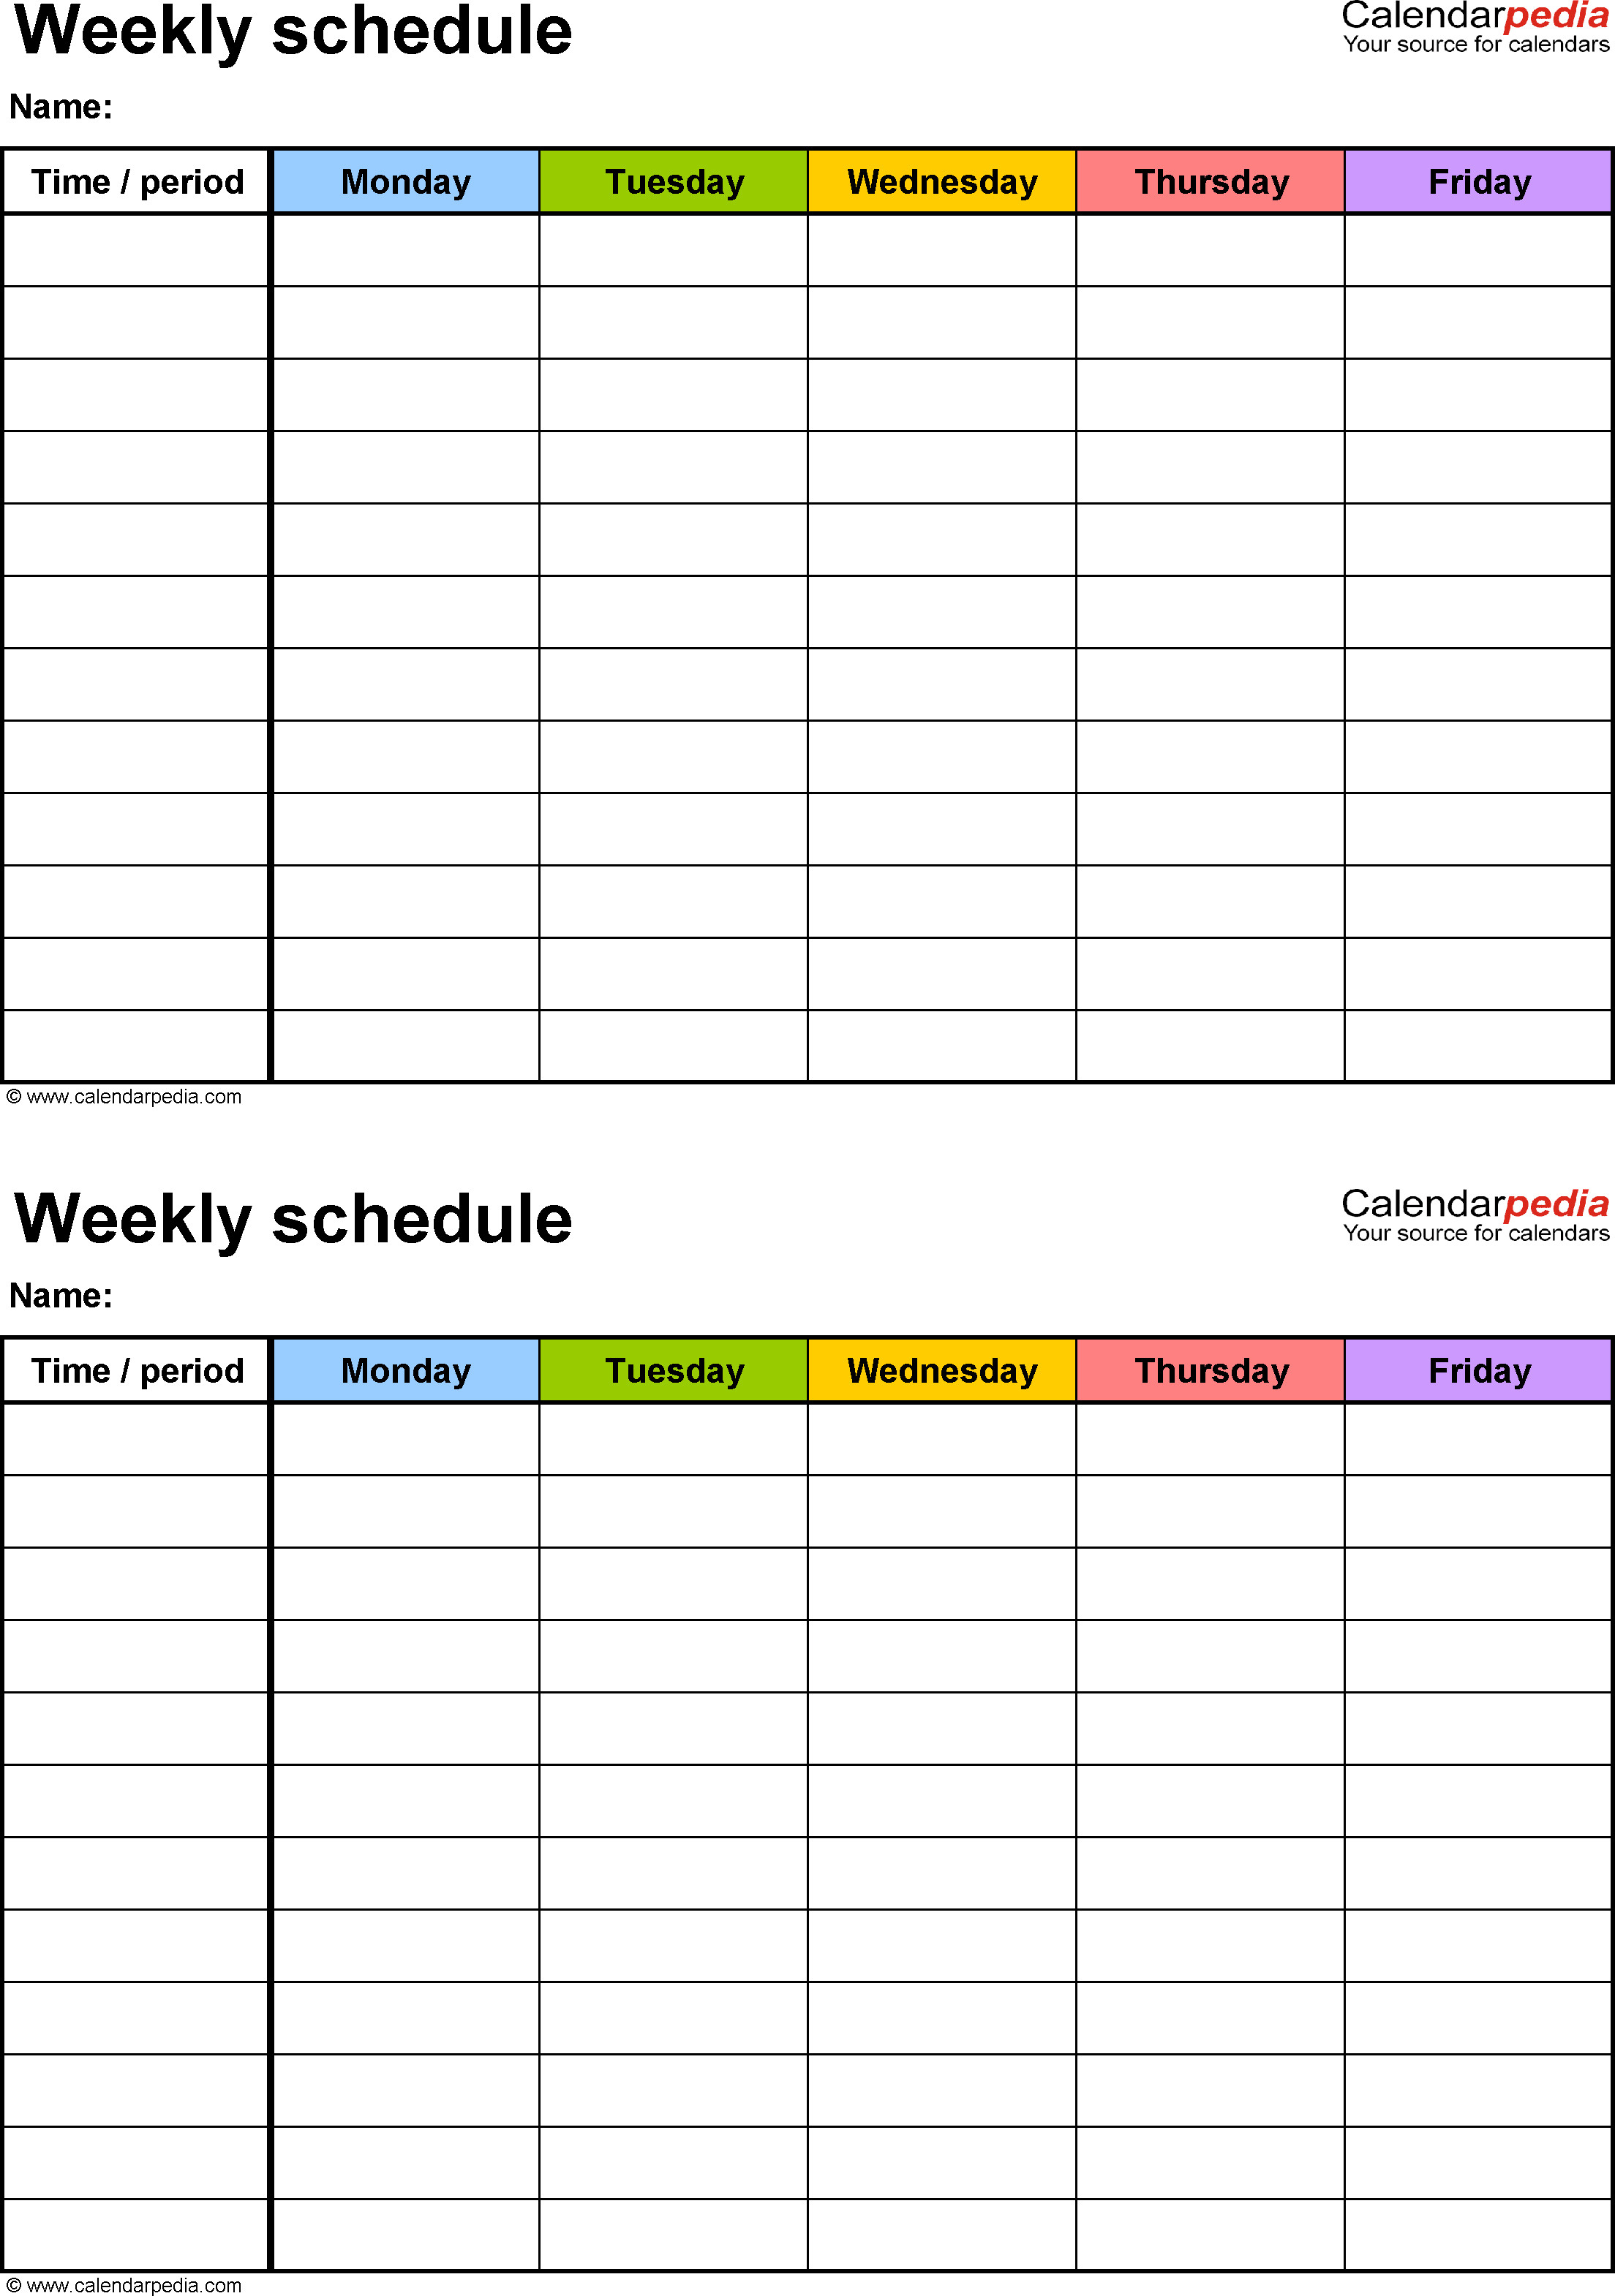 One Week Schedule Template Free Weekly Schedule Templates for Word 18 Templates